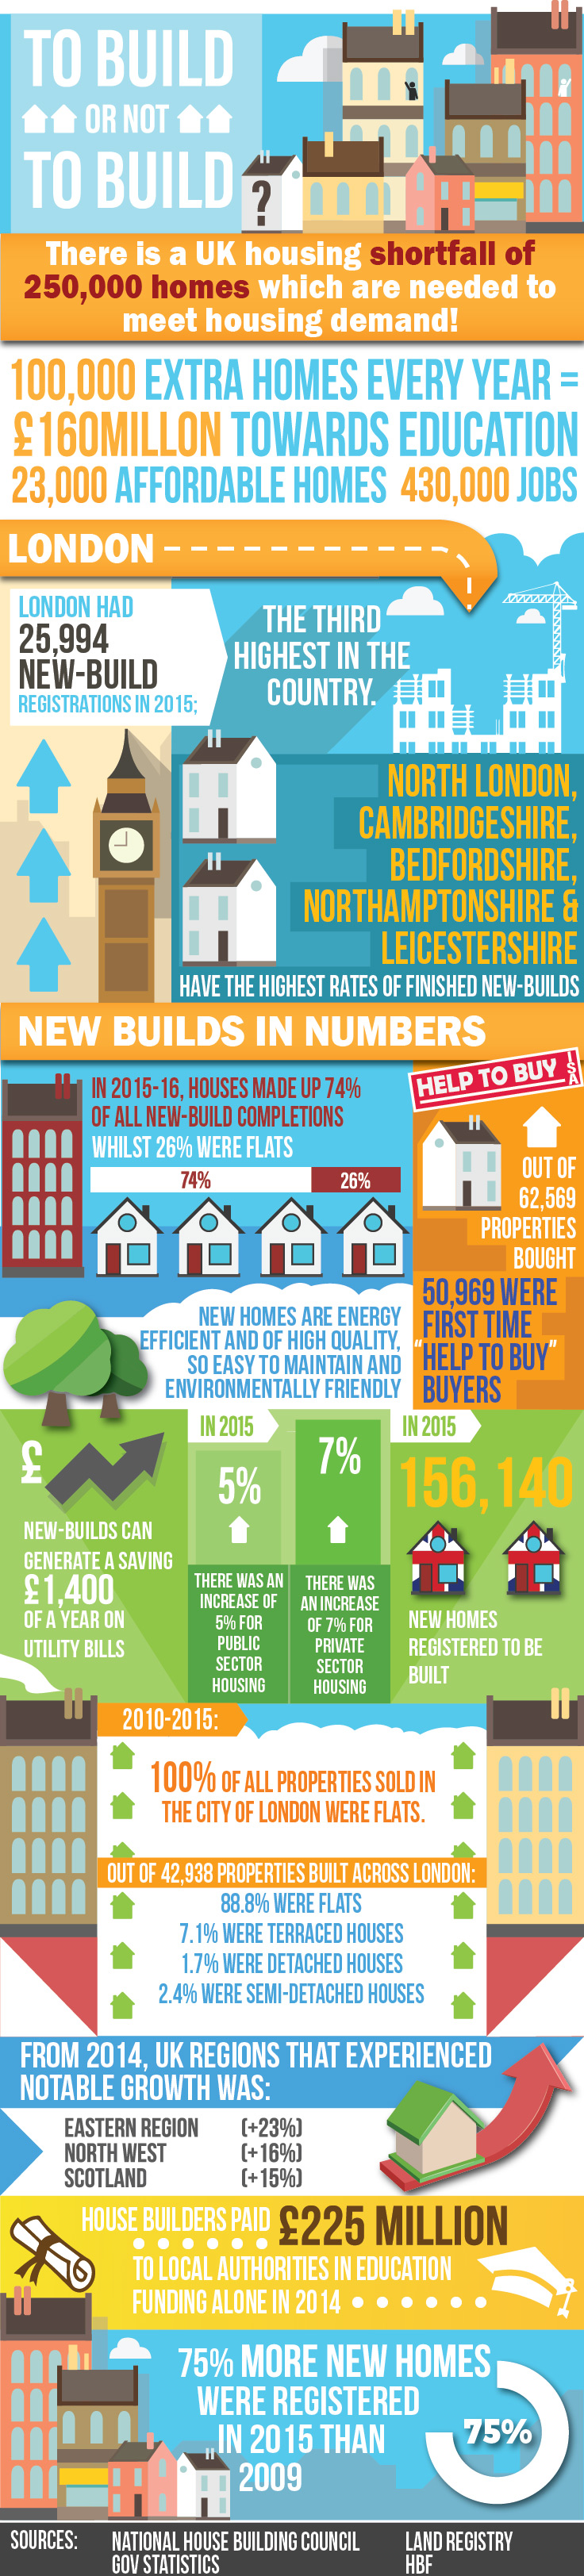 New-builds-infographic-final